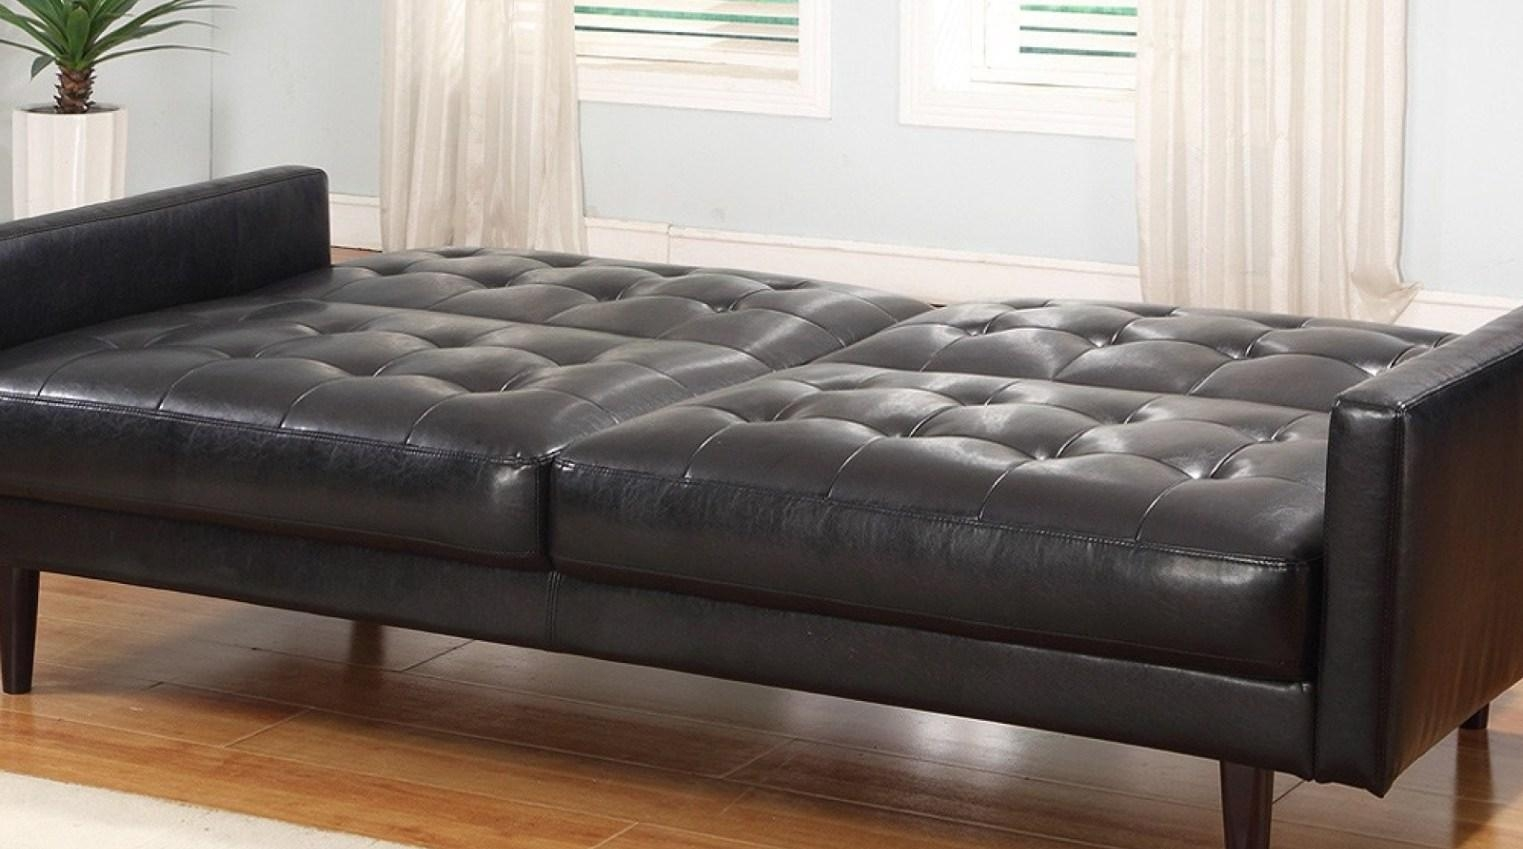 Sofa : Chesterfield Sofa History Goingtheextramile Cheap With Regard To Classic English Sofas (View 21 of 21)